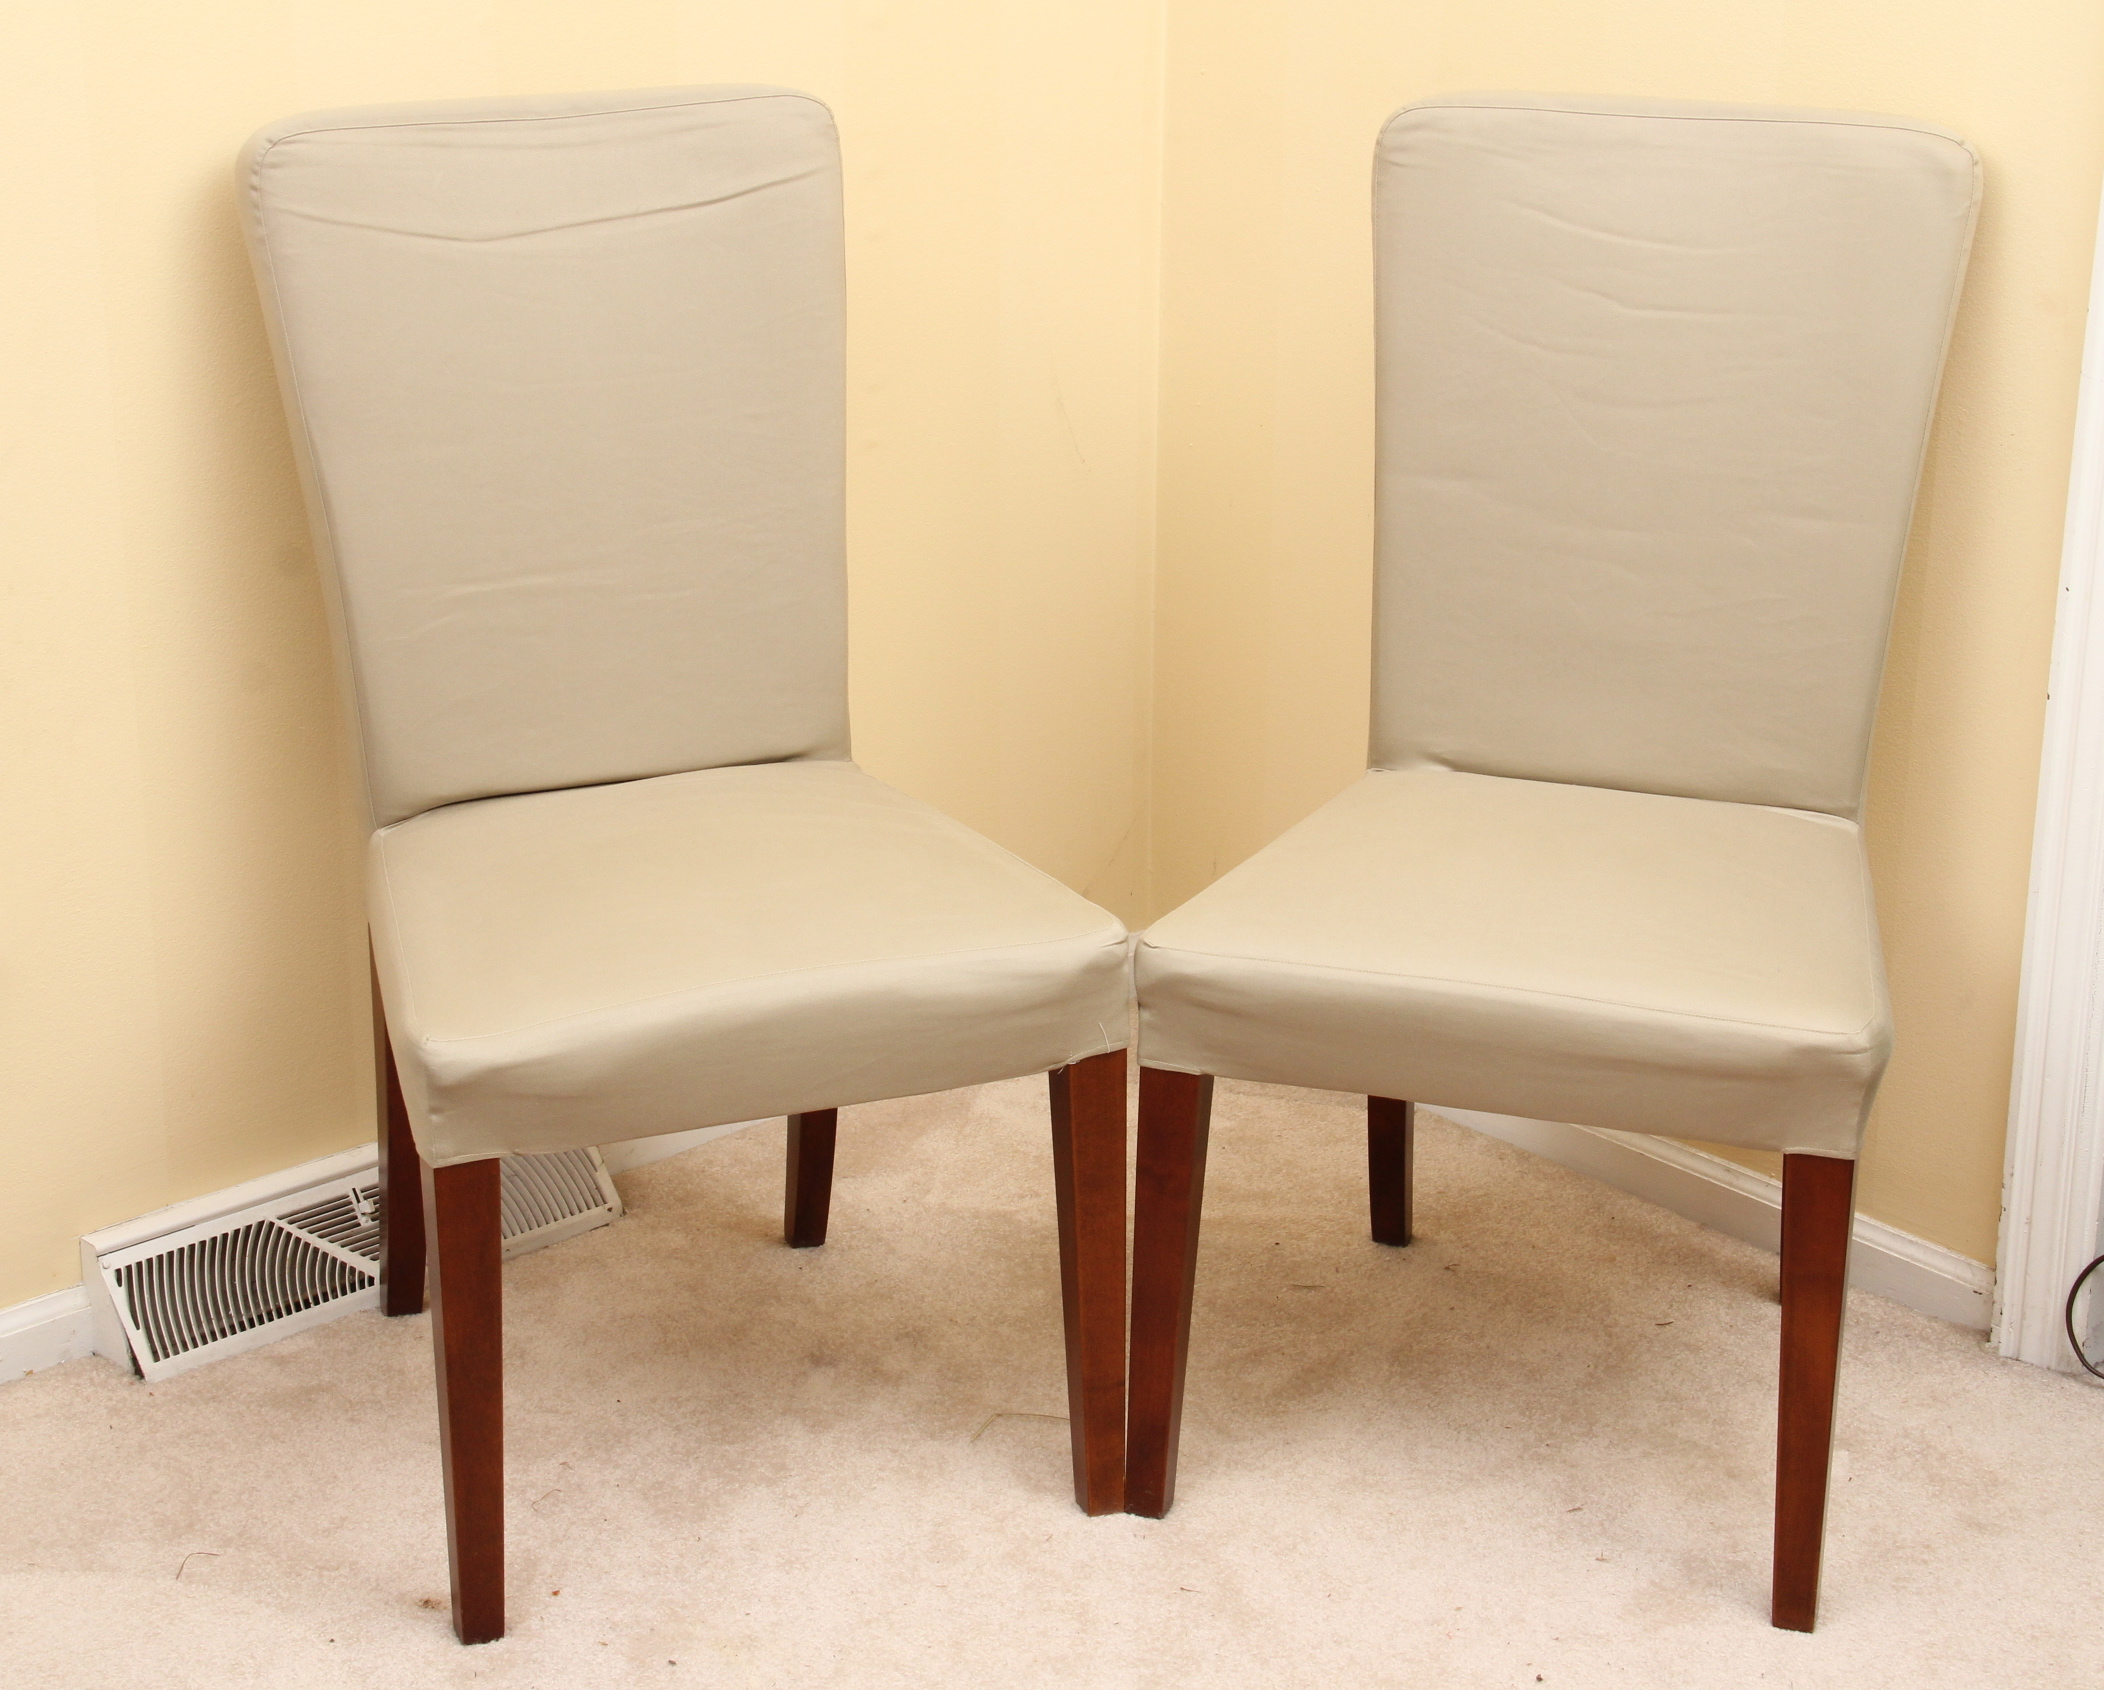 pottery barn dining chair covers chairs for autism set of two quotmegan quot with slipcovers ebth